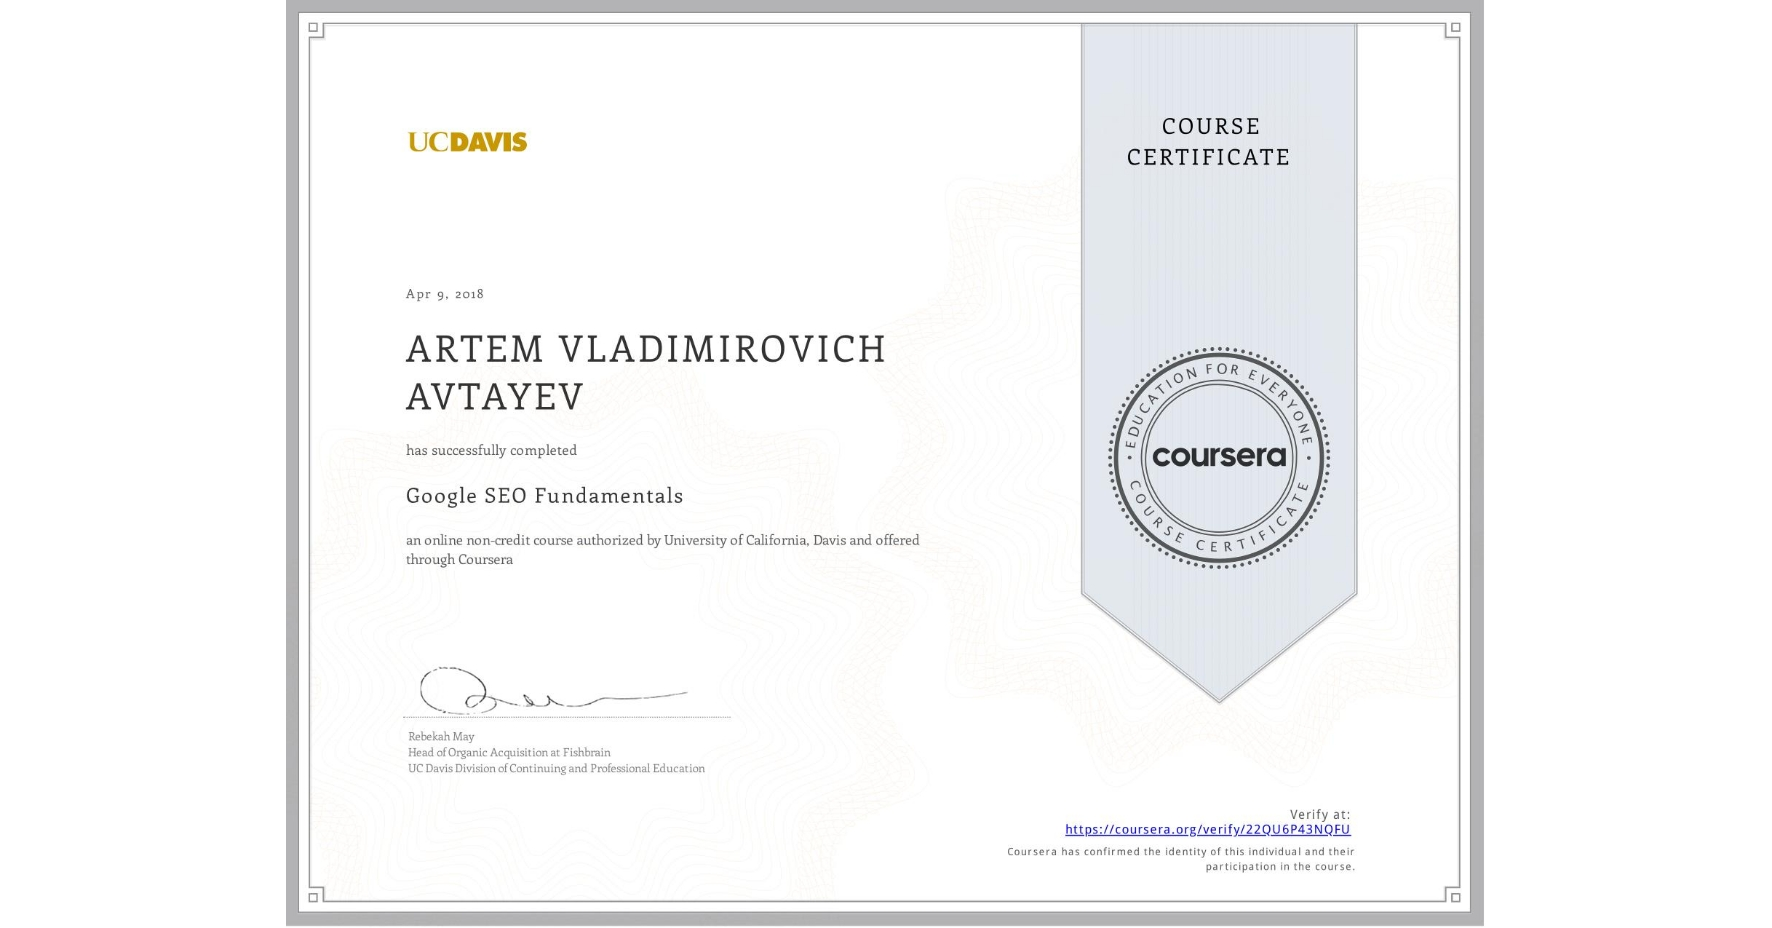 View certificate for ARTEM VLADIMIROVICH  AVTAYEV, Search Engine Optimization Fundamentals, an online non-credit course authorized by University of California, Davis and offered through Coursera